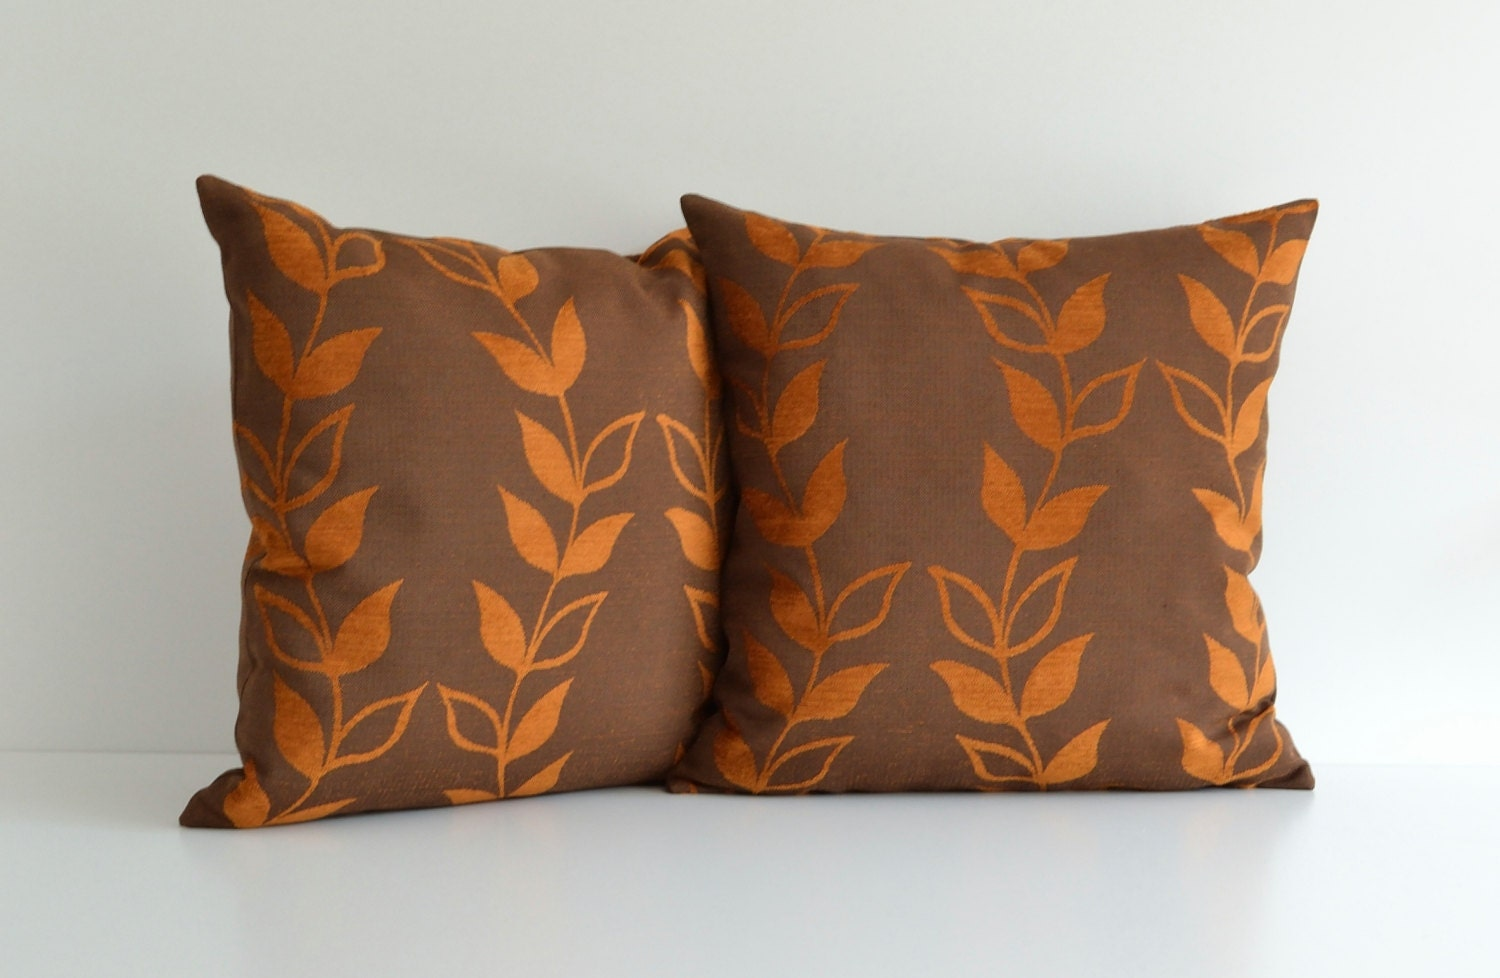 Orange Decorative Pillows Couch : 20x20 Orange And Brown Decorative Throw Pillow For Couch